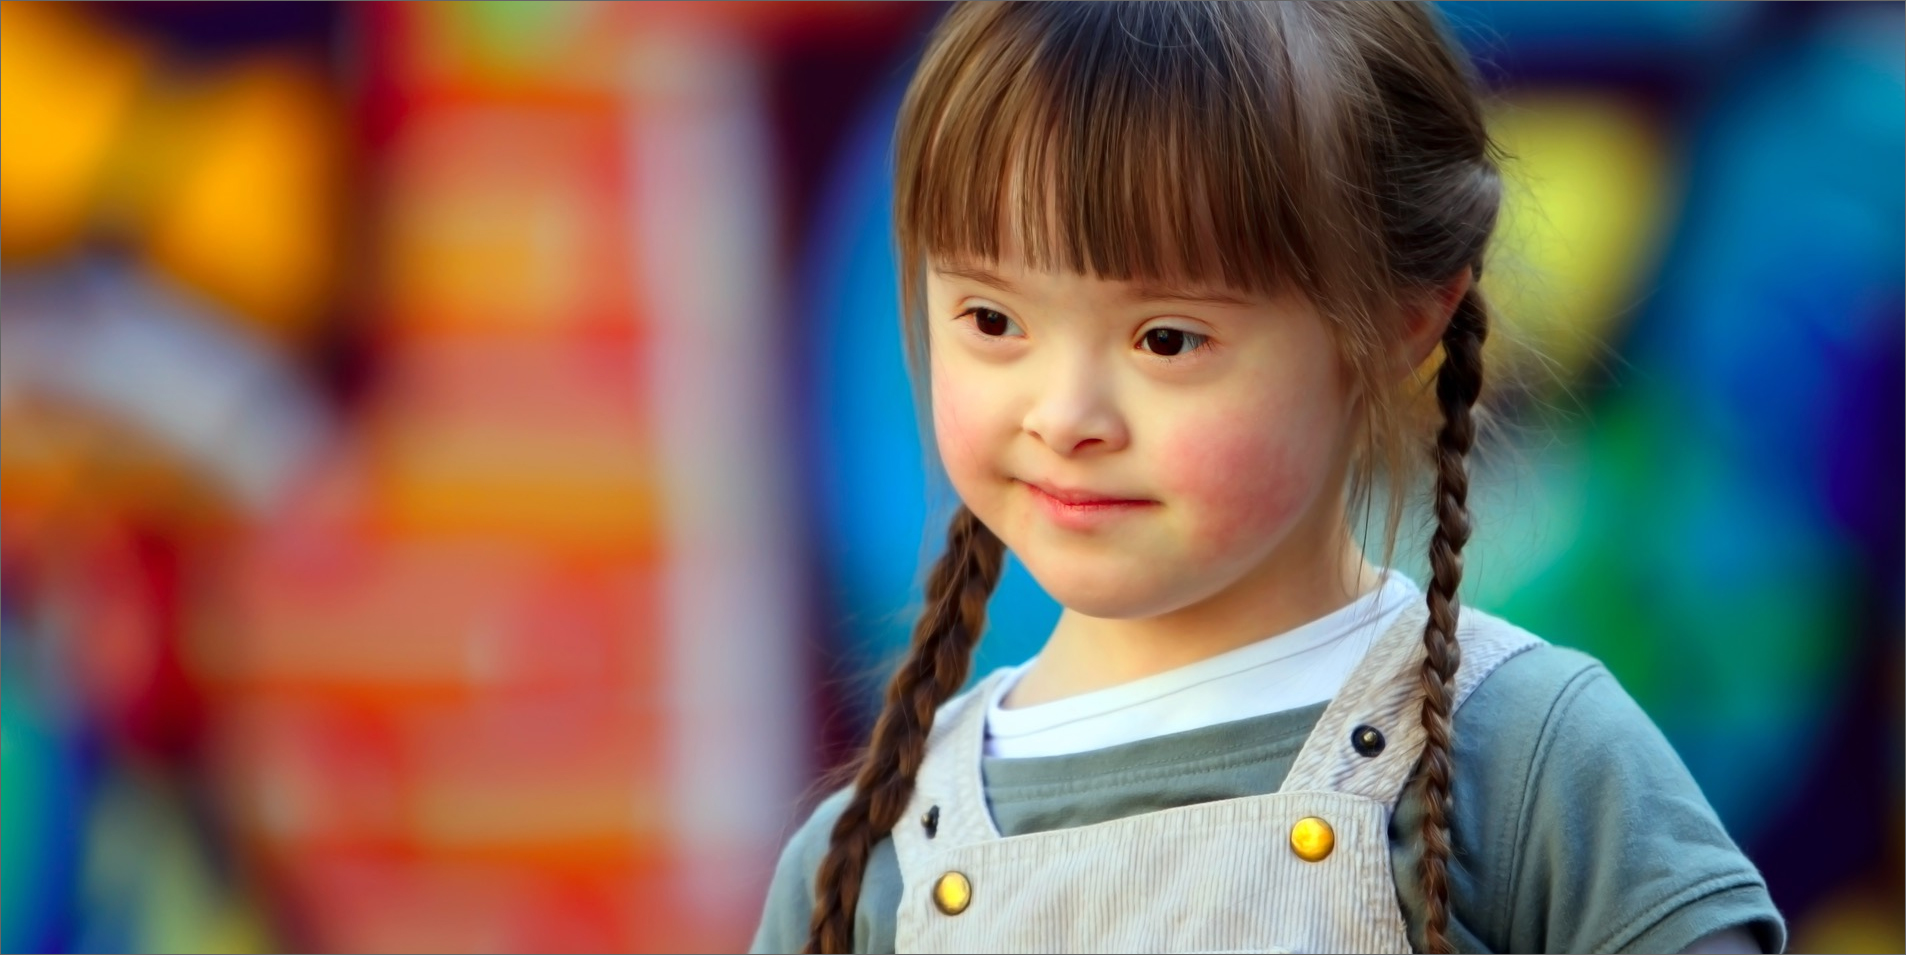 Smiling young girl with bokeh background